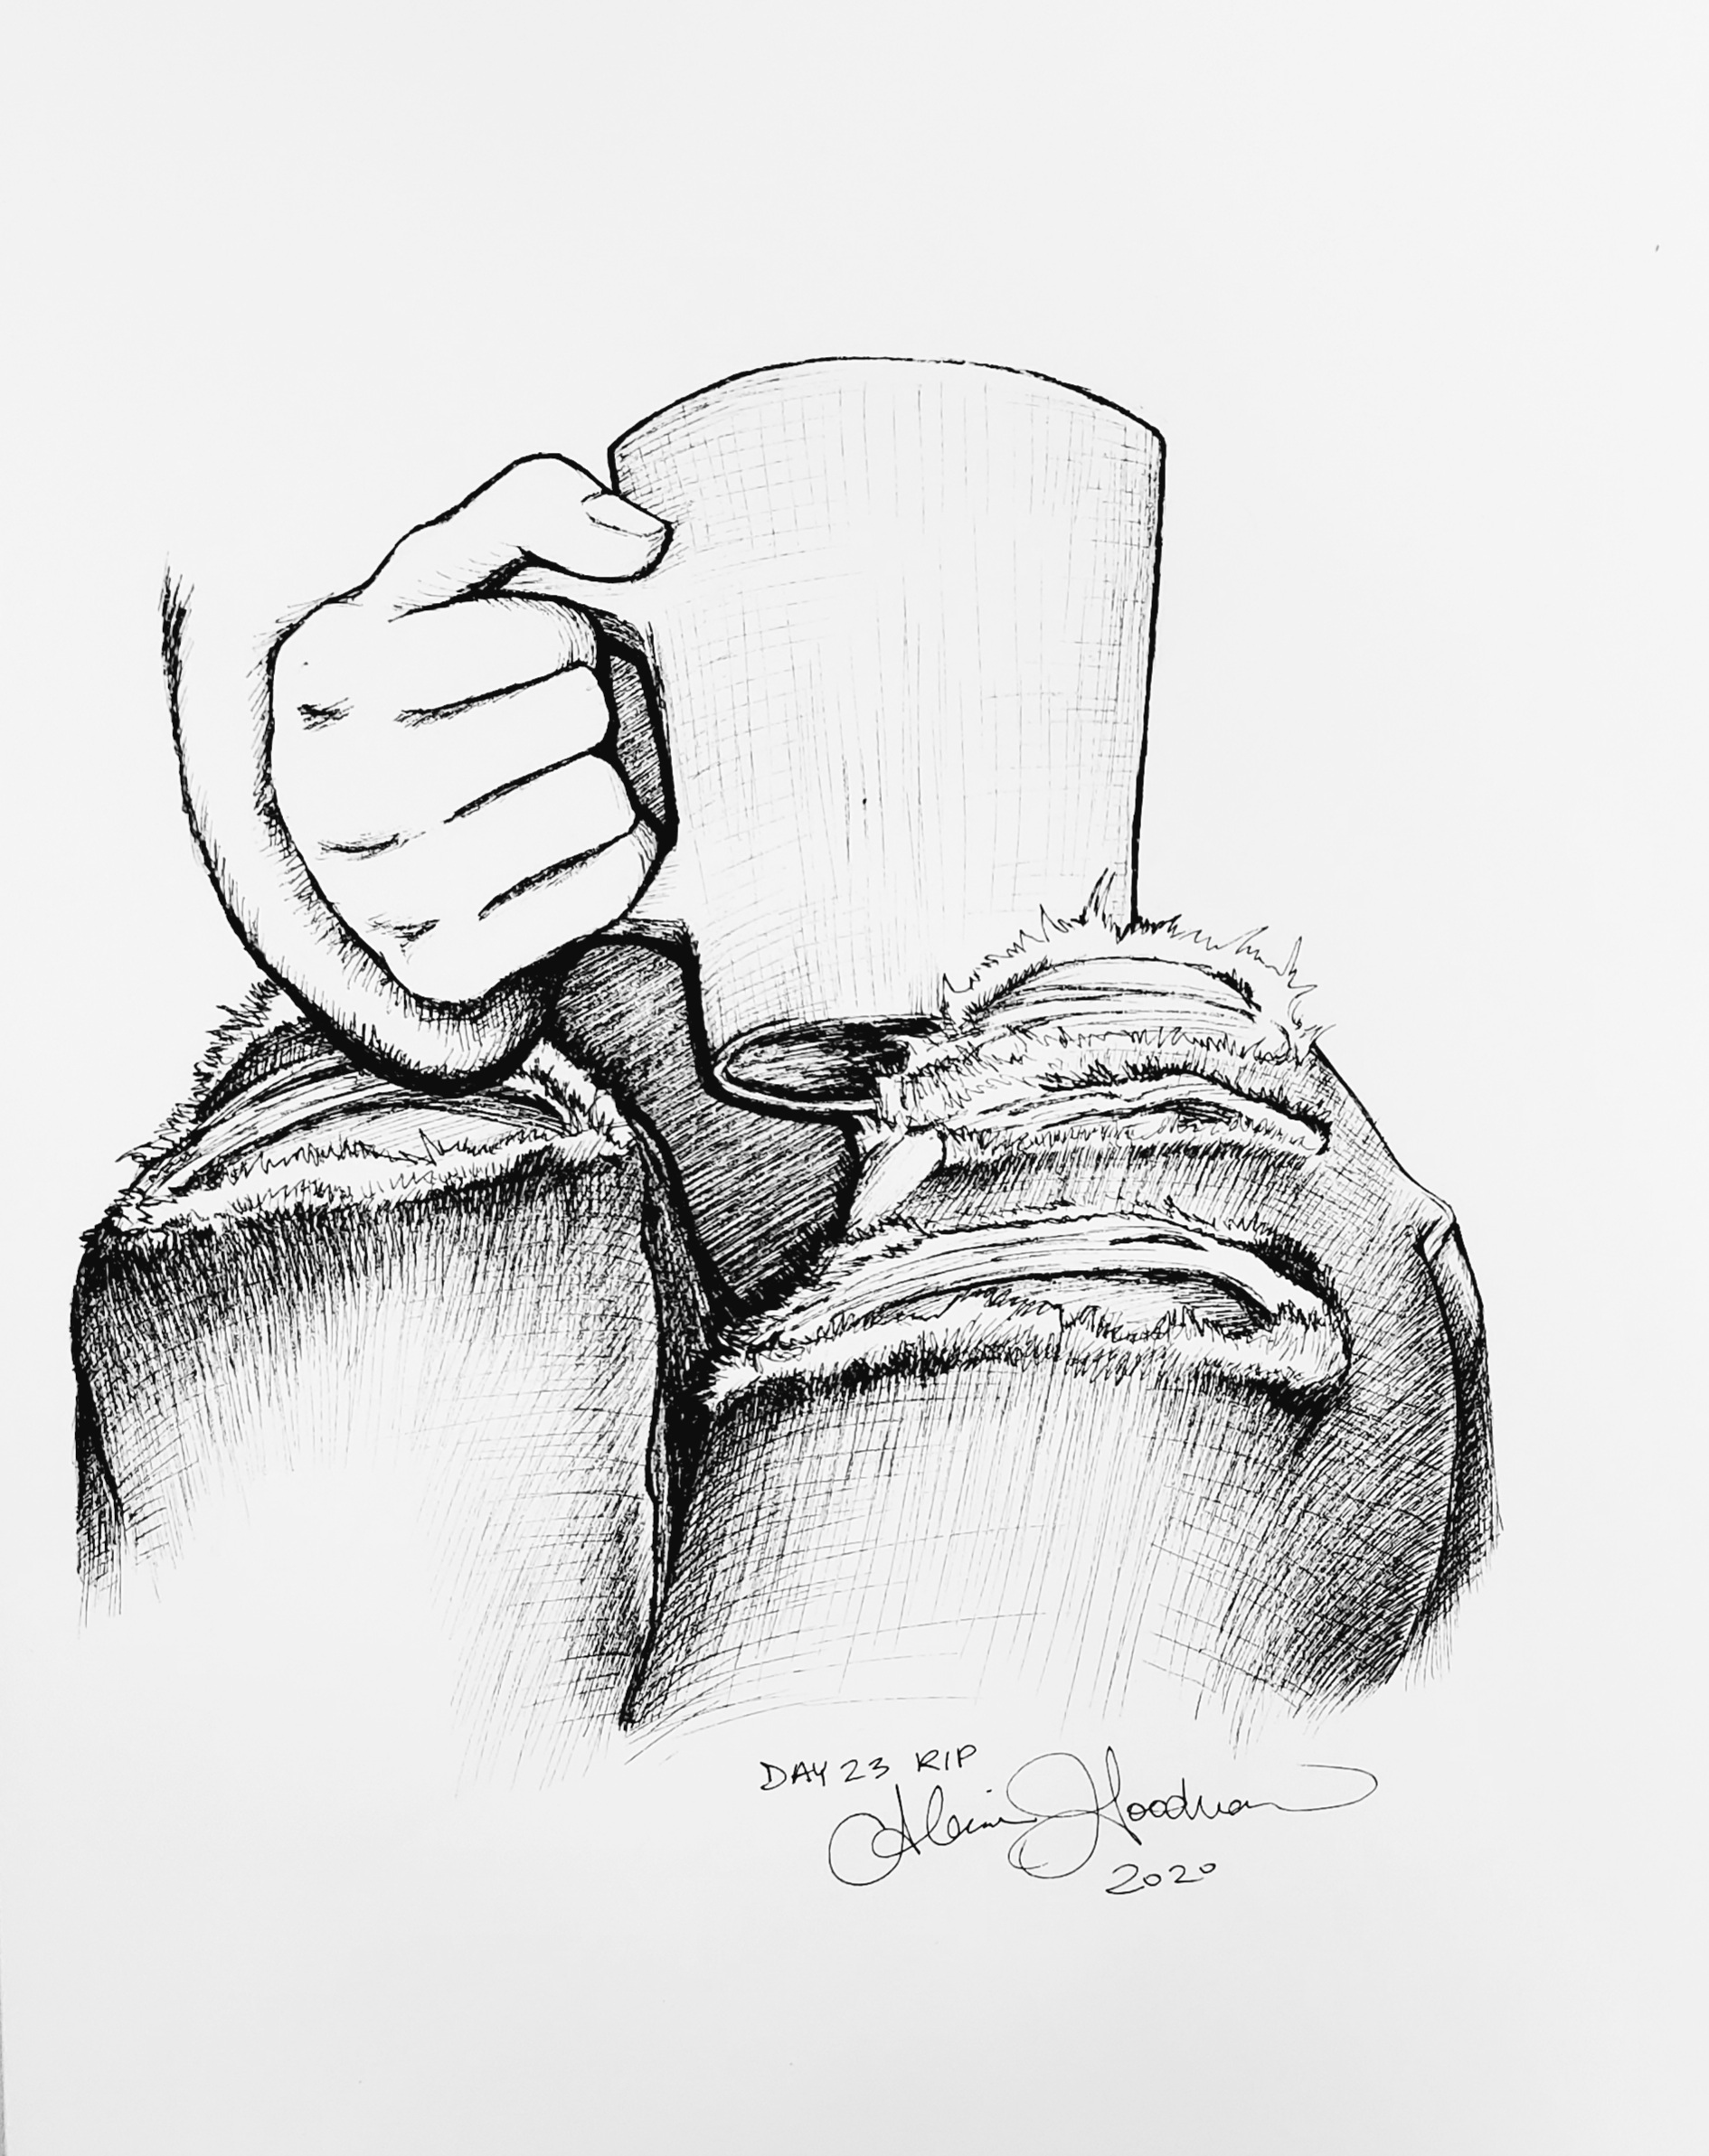 Inktober Day 23 Ripped jeans with hand holding coffee mug ink drawing by alecia goodman 2020 to present